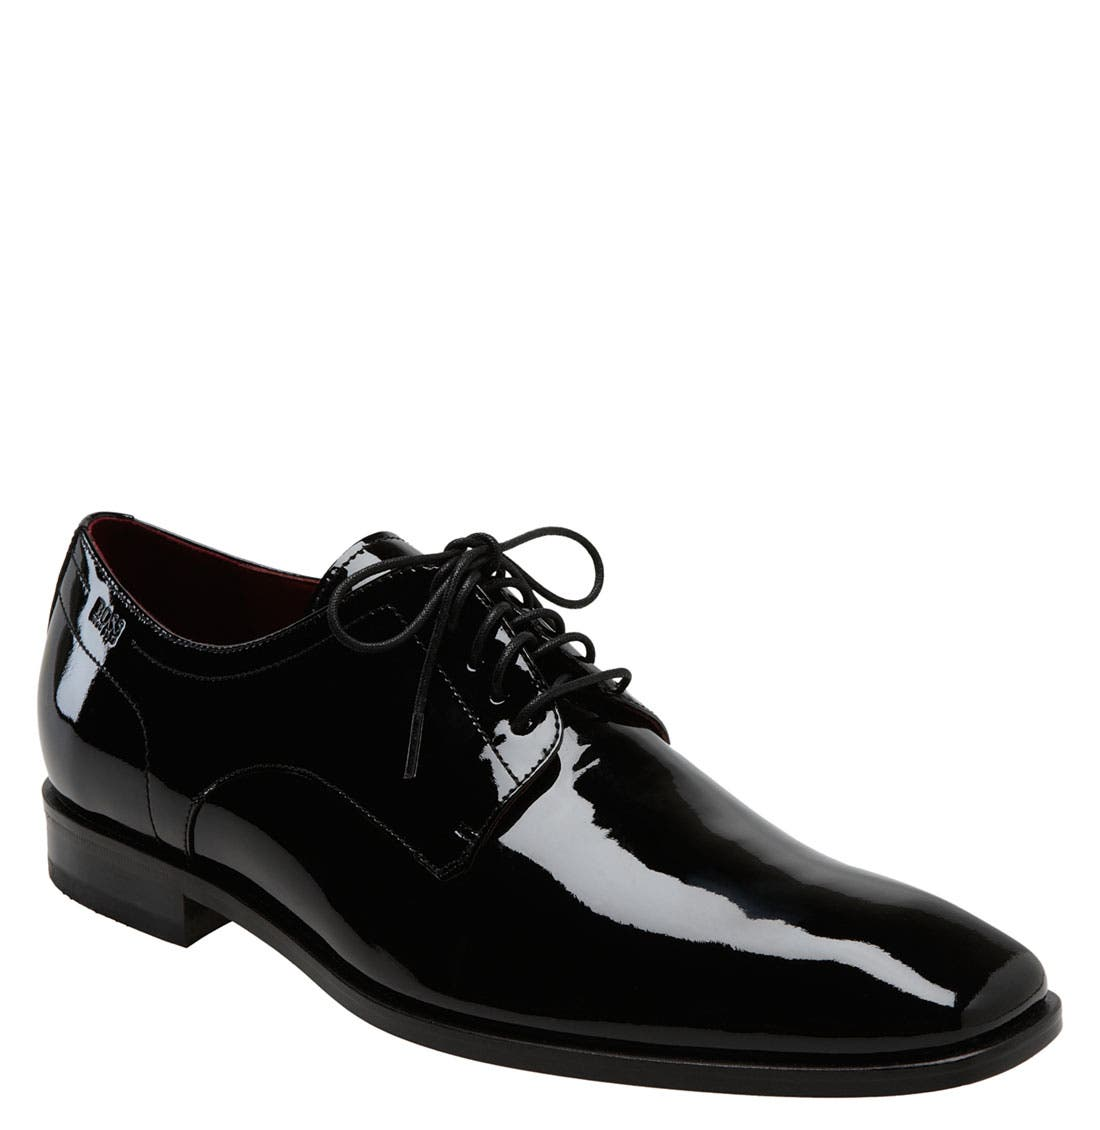 Alternate Image 1 Selected - BOSS Black 'Recco Lux' Oxford